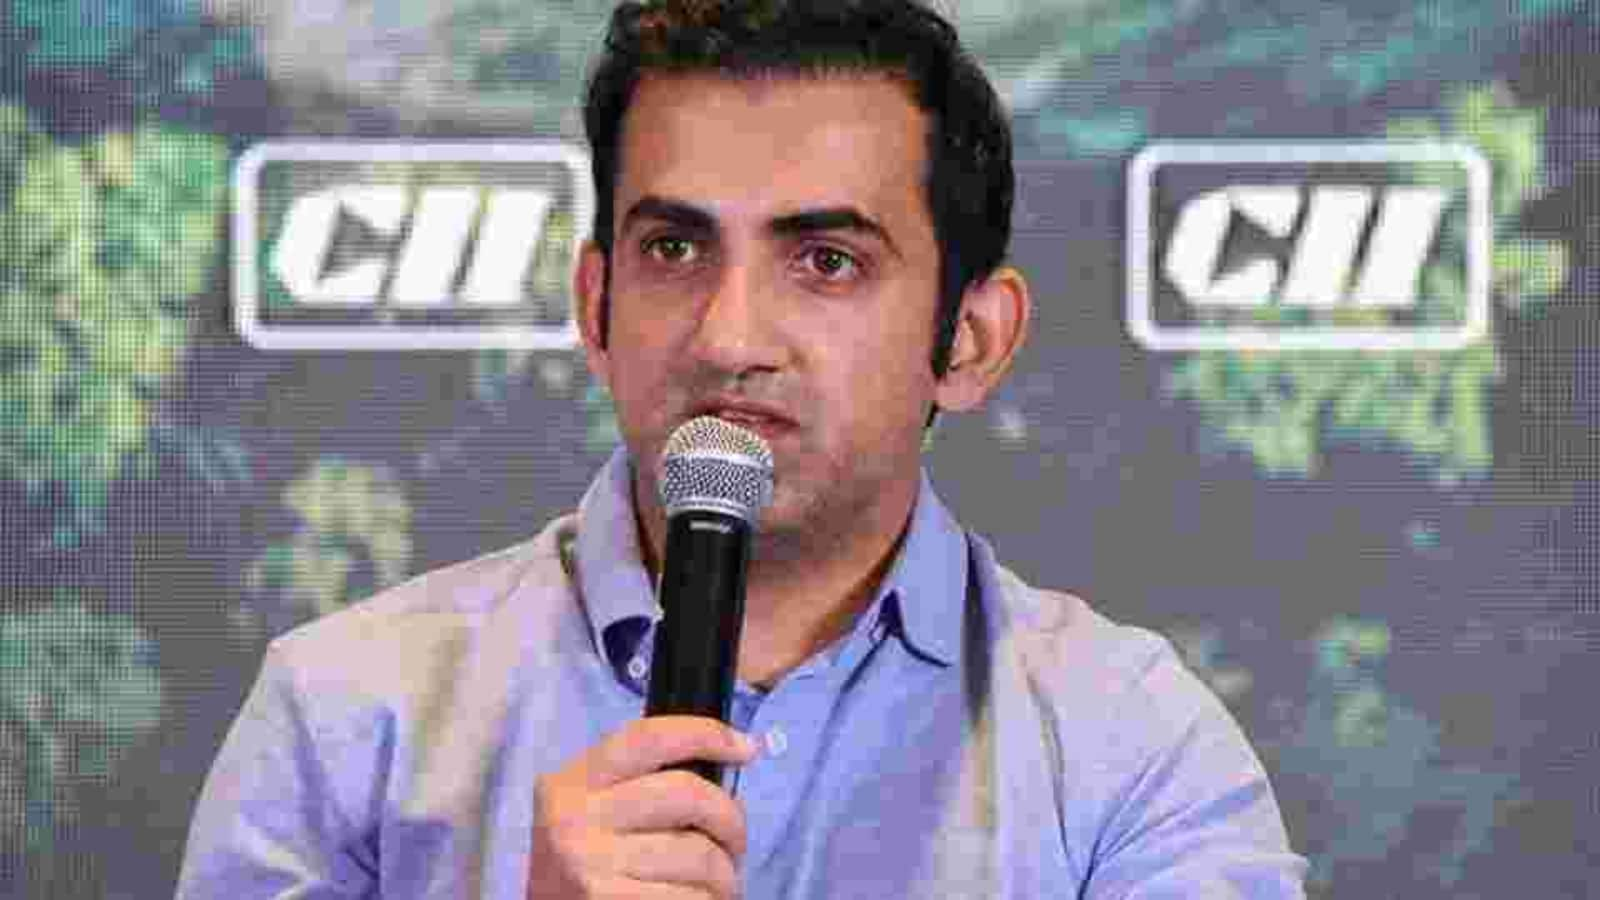 'When he is hot, he can be very hot': Gambhir 'absolutely shocked' at Indian pacer's price at IPL 2021 Auction - Hindustan Times